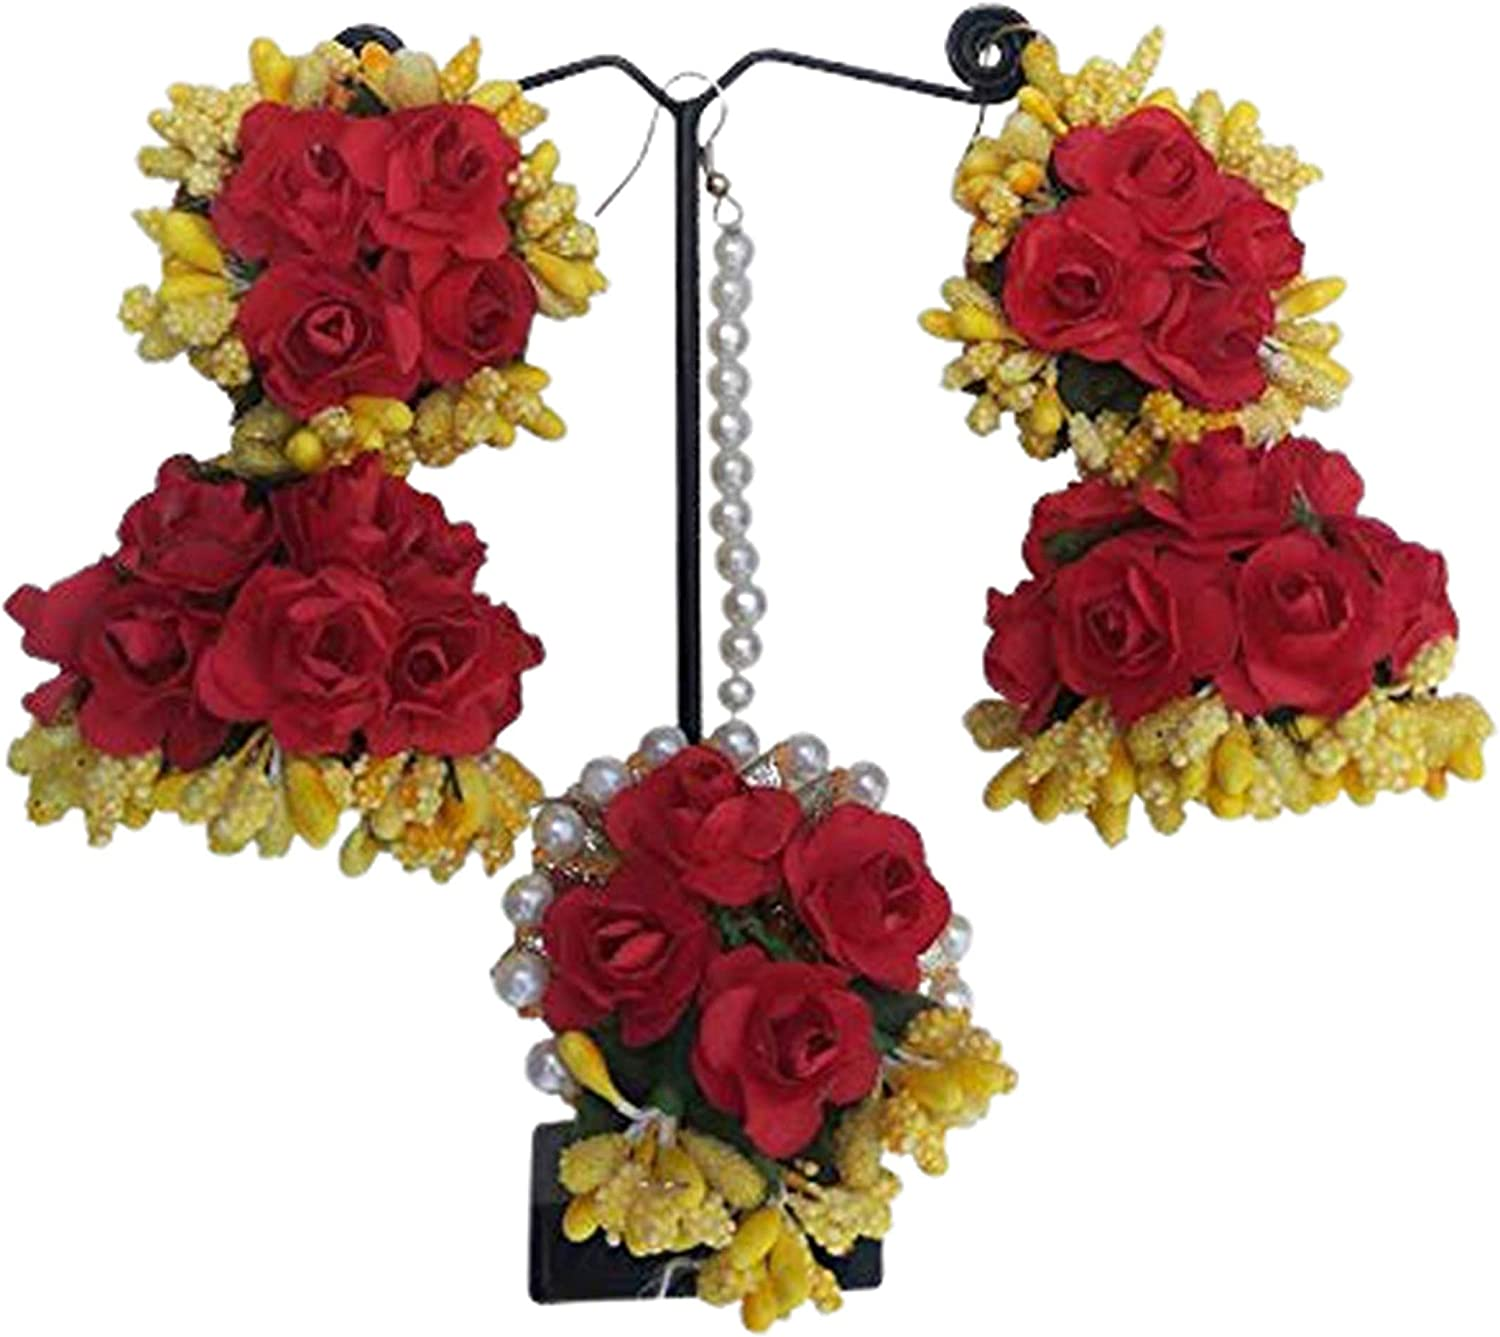 Riya Handicraft Women's Flower Maang Tikka and Earrings Jewelry Set for Wedding Baby Shower Haldi Mehandi Party in Yellow and Red Colour